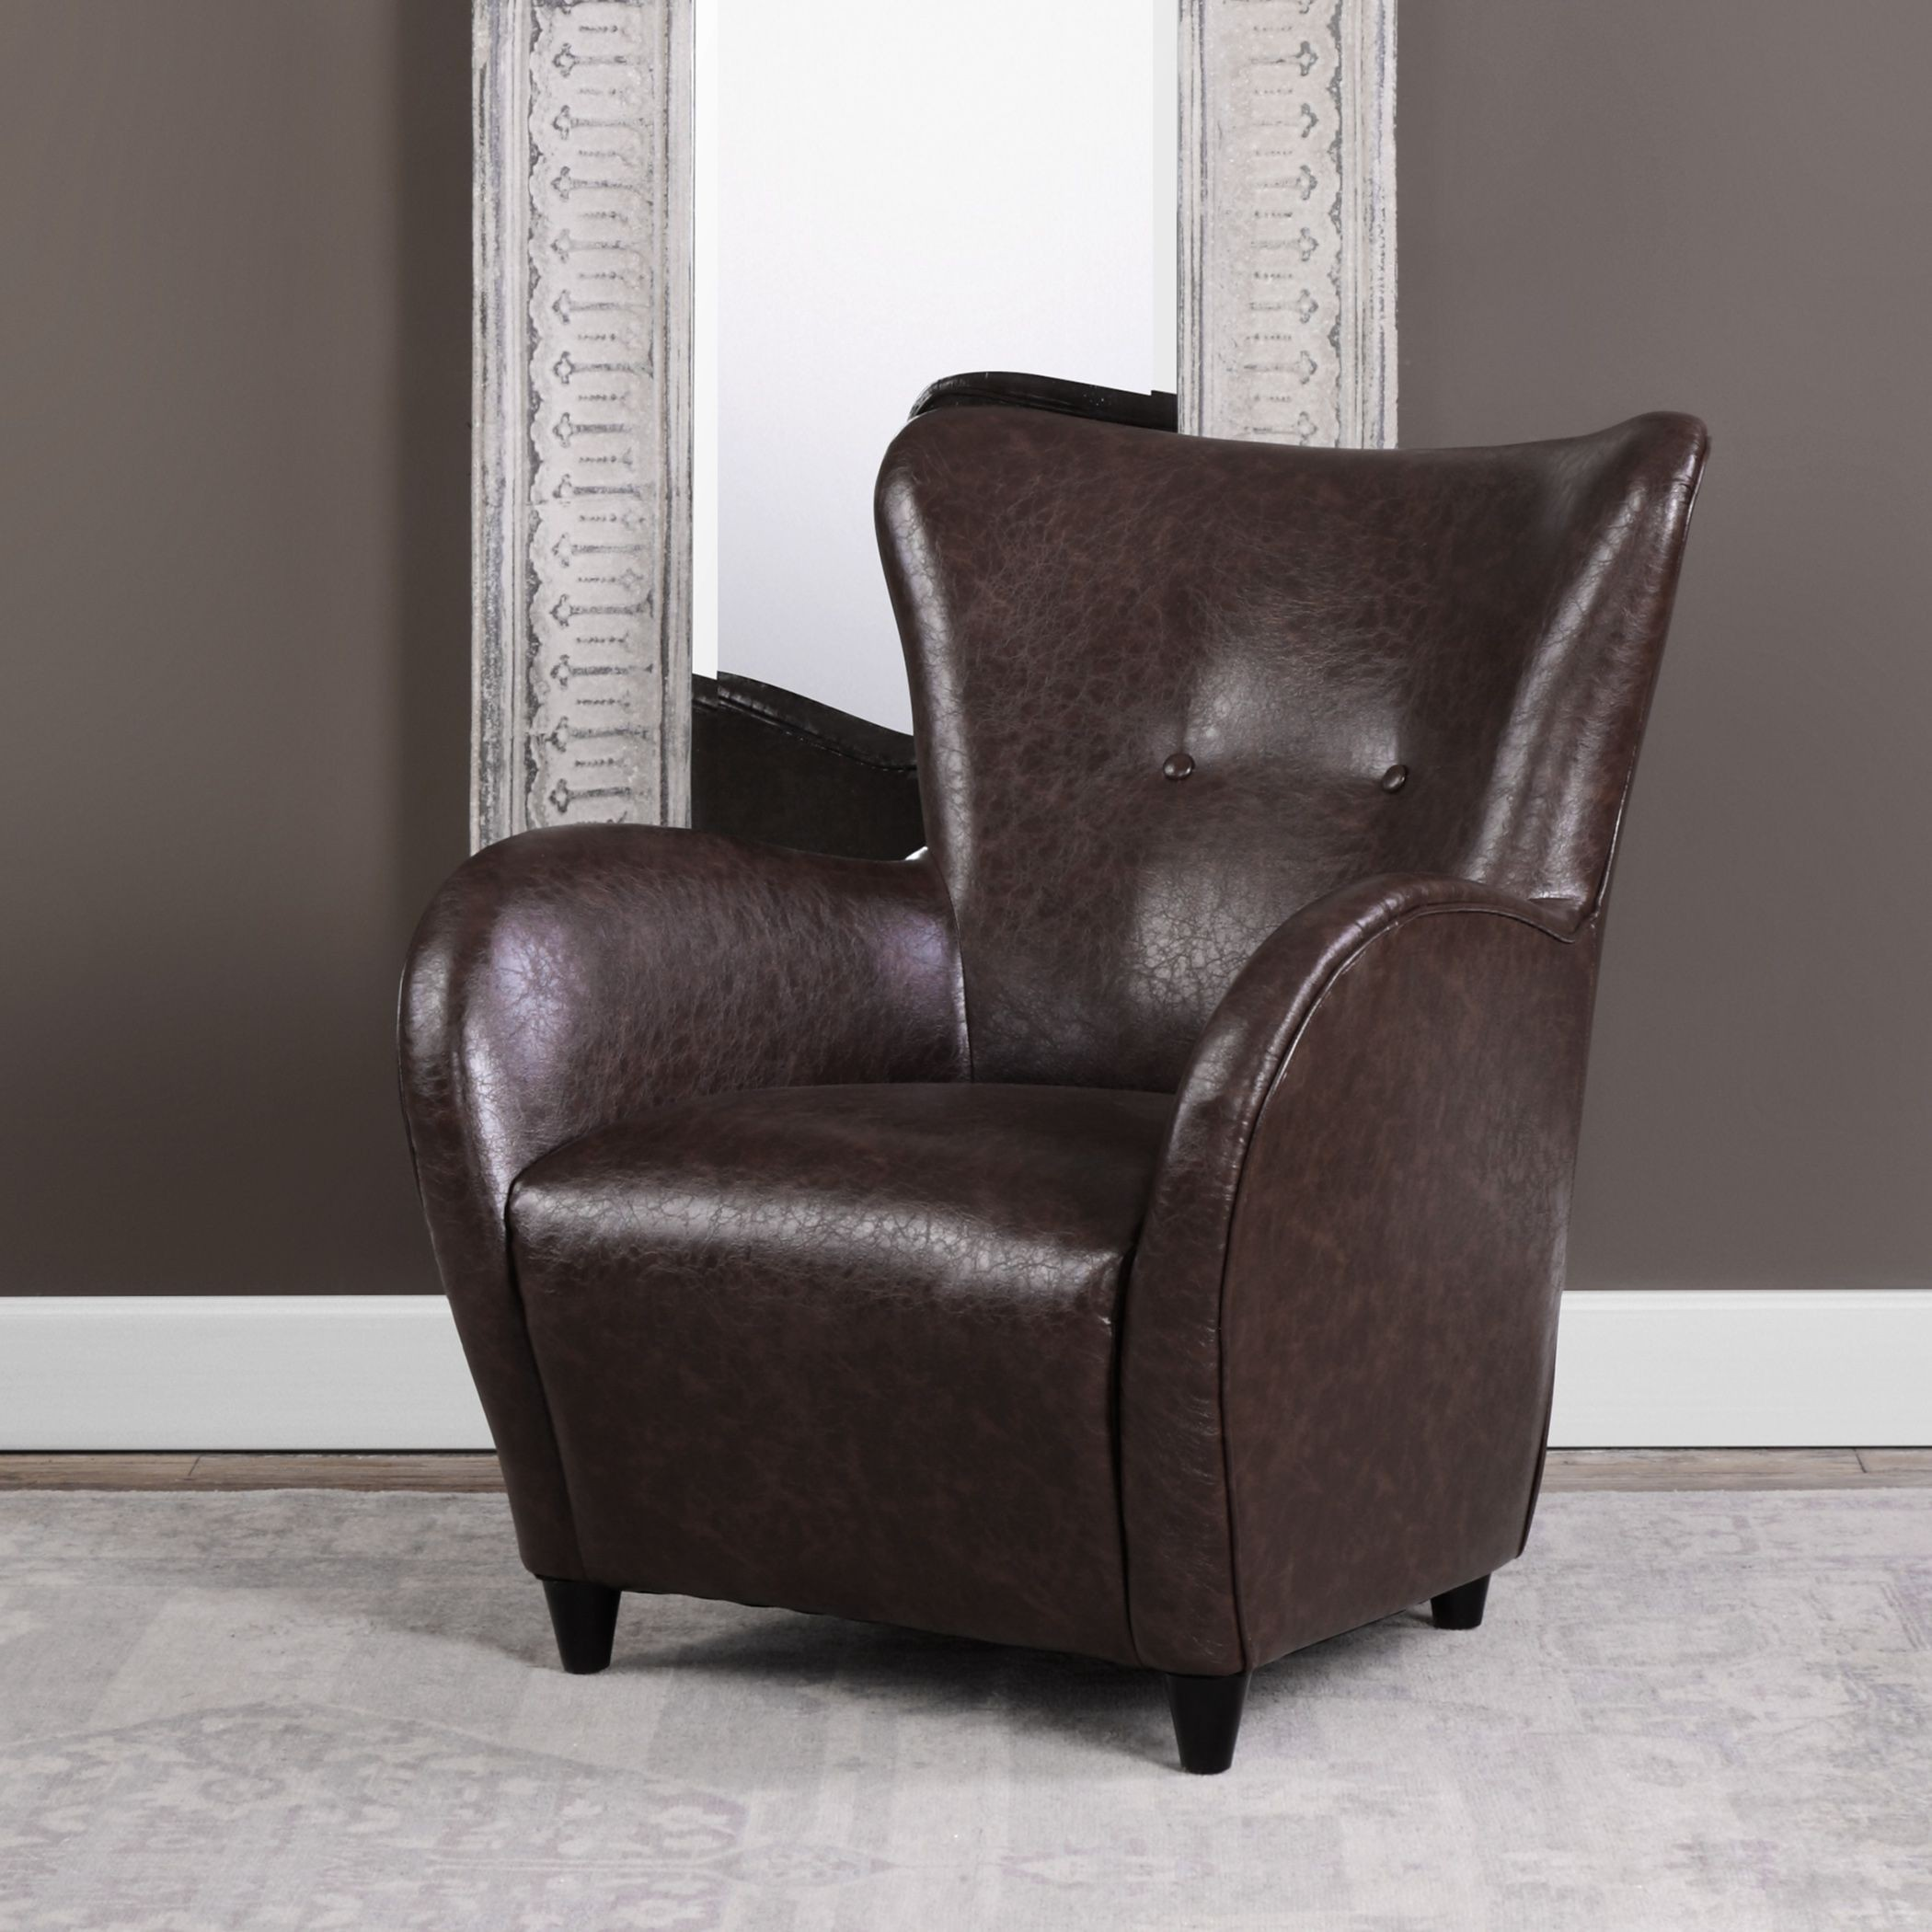 Amron Brown Leather Accent Chair Accent Chairs Brown: Lyric Brown Leather Accent Chair, 23335, Uttermost